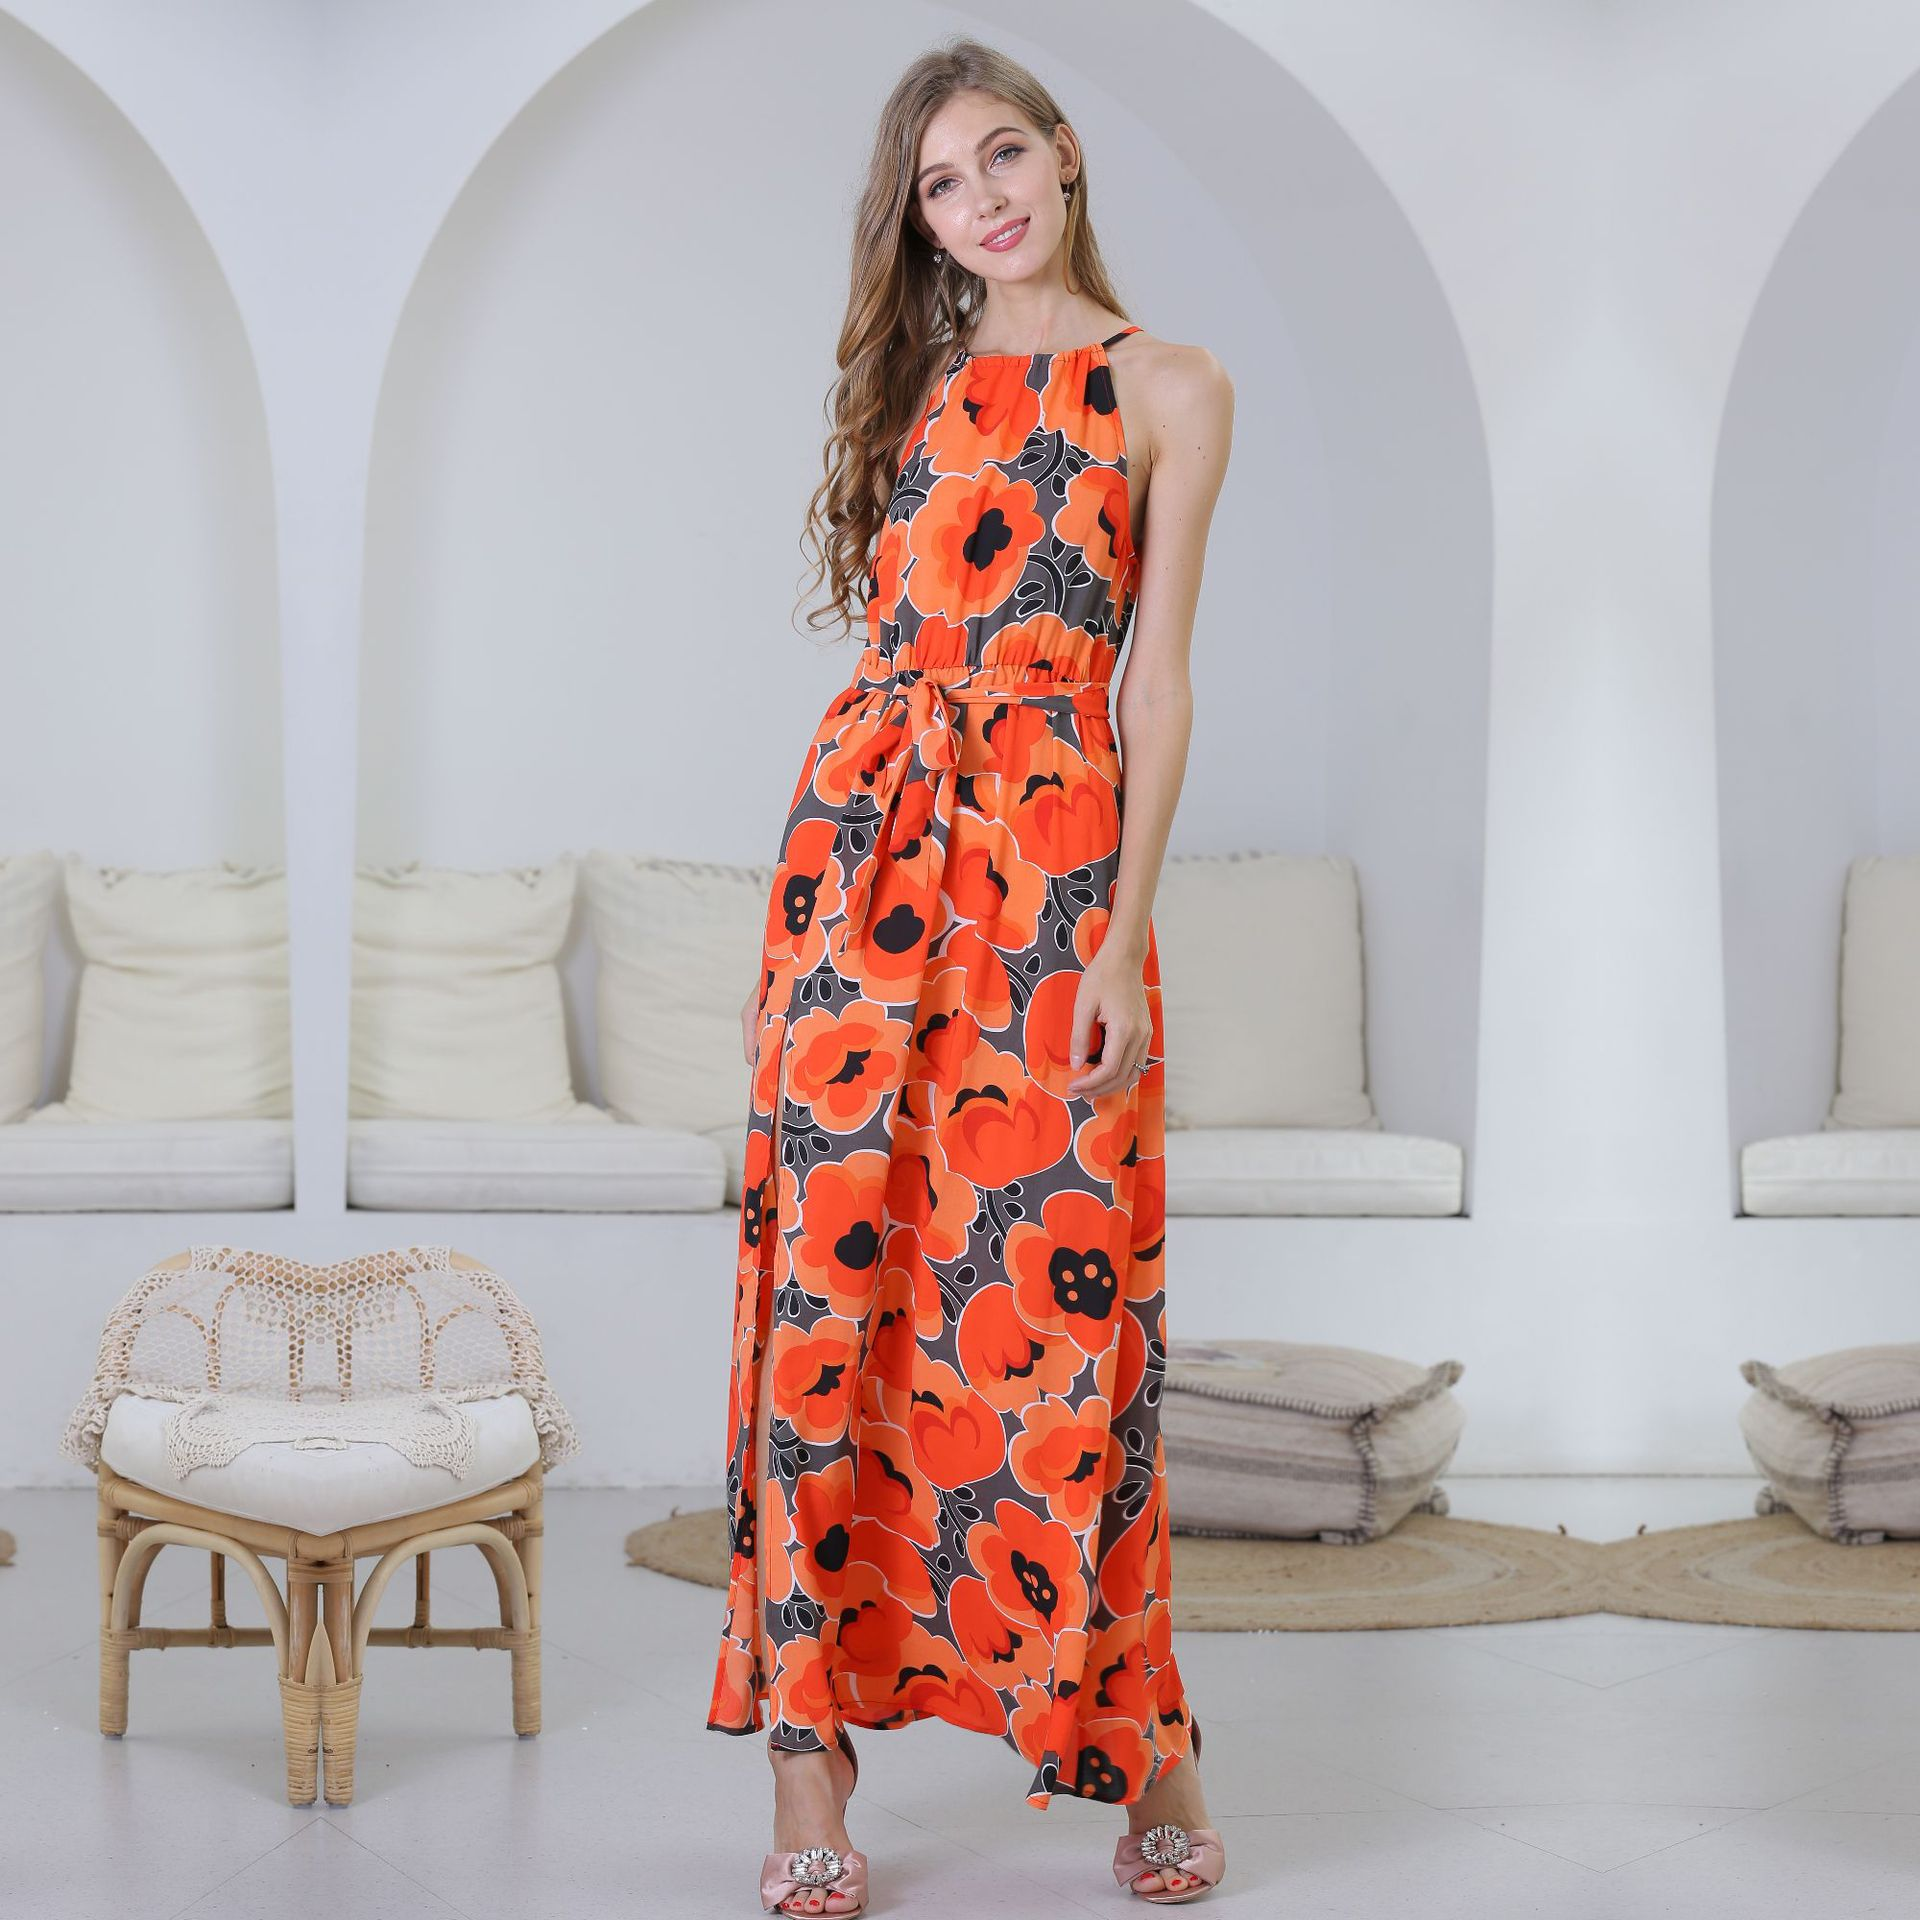 Dress Summer 2019 Net Red Europe and America Women's Print Chiffon Dress Sleeveless Sling Skirt Floral Dress